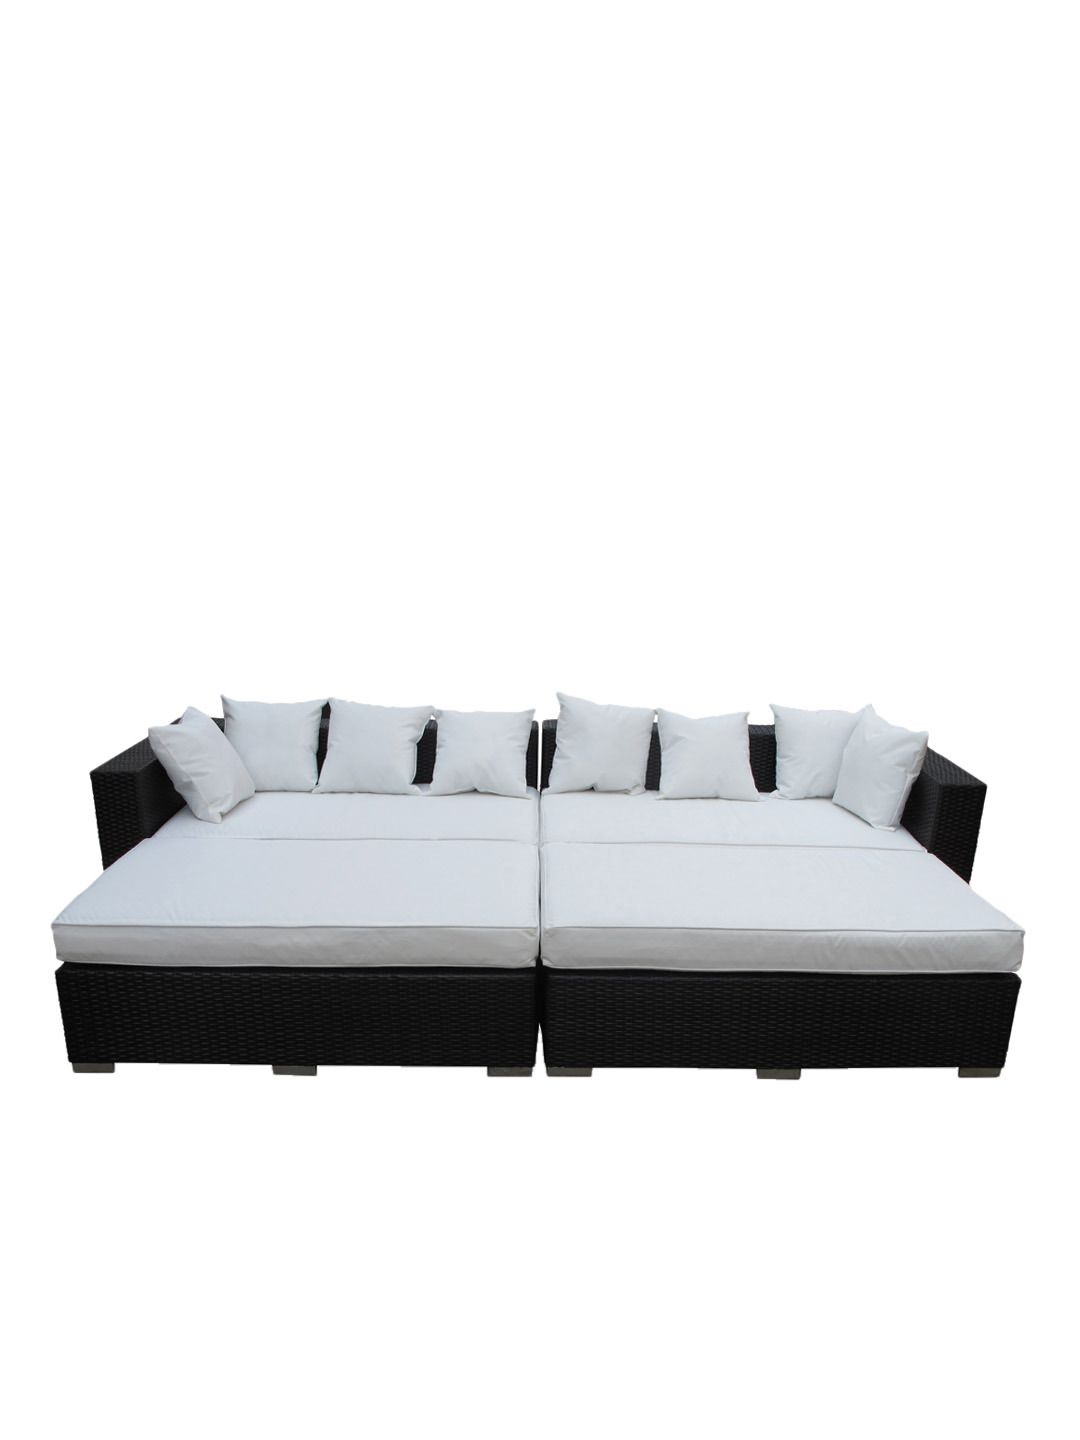 daybed option for playroom/bedroom (With images) | Outdoor ... on Living Spaces Outdoor Daybed id=60813